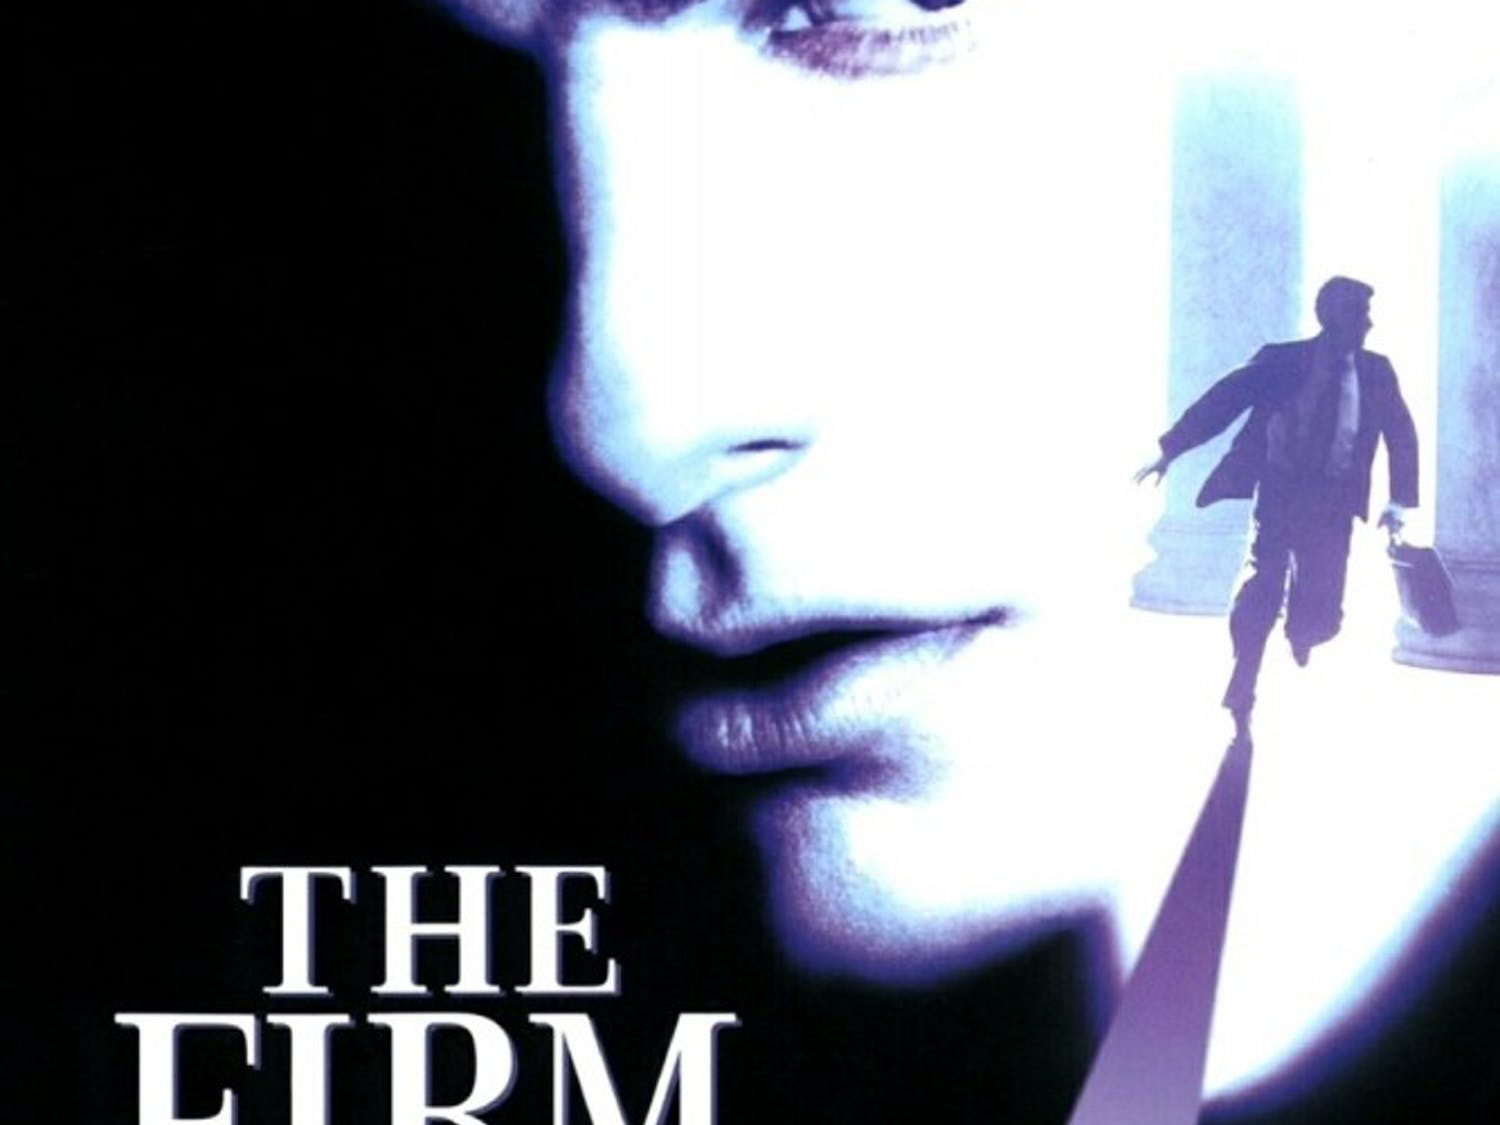 """Originally released in 1993,""""The Firm"""" has an impressive cast, impeccable soundtrack and plot from the innovative thriller subgenre."""